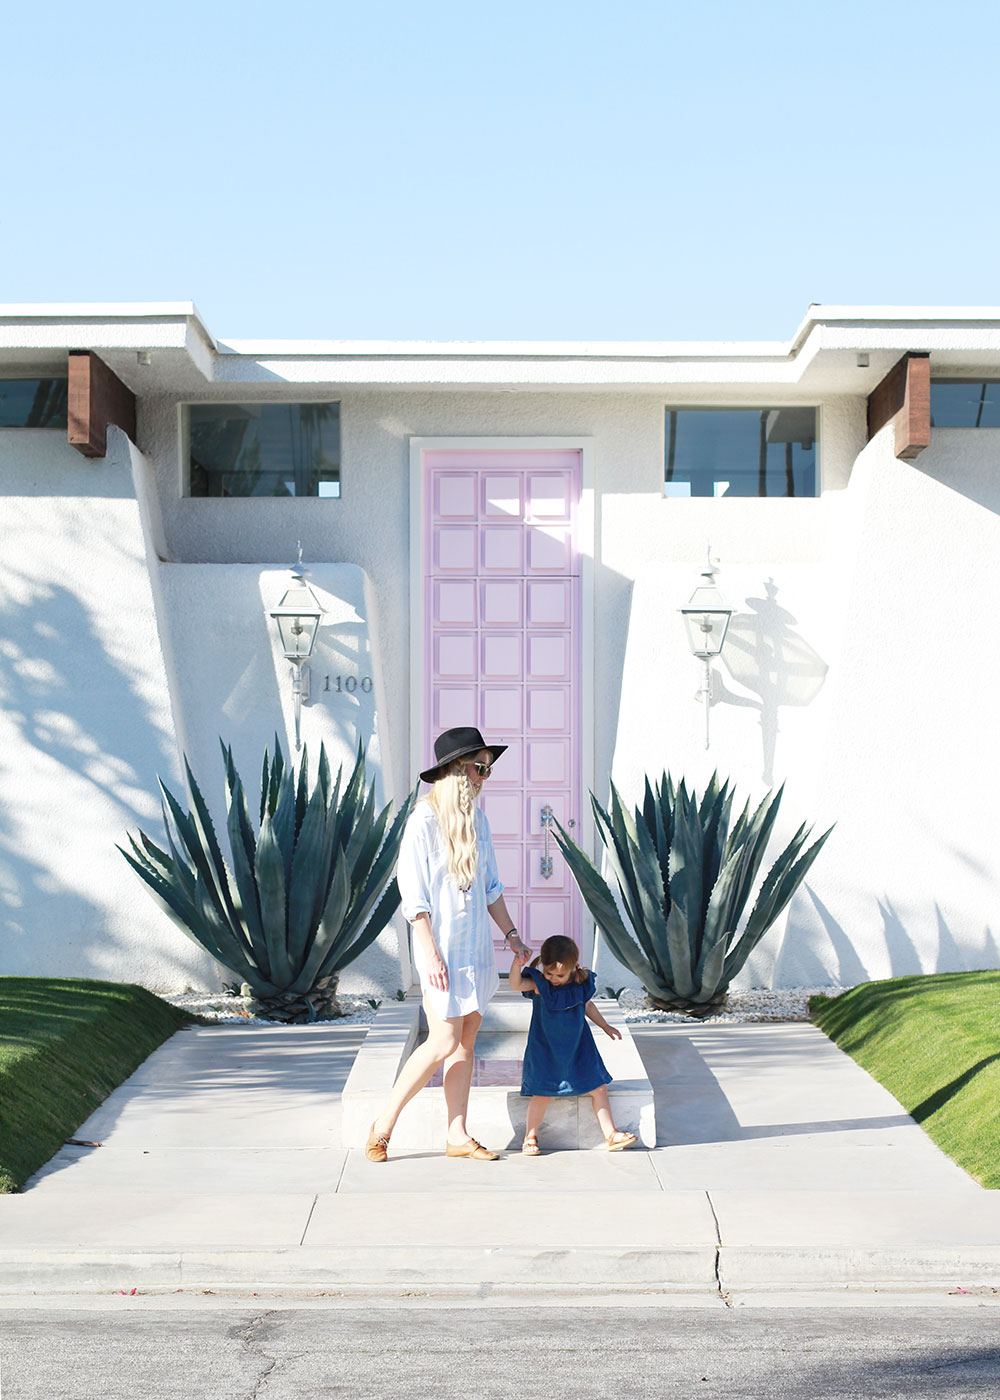 me + my girl in front of #thatpinkdoor in palm springs, california | thelovedesignedlife,cin